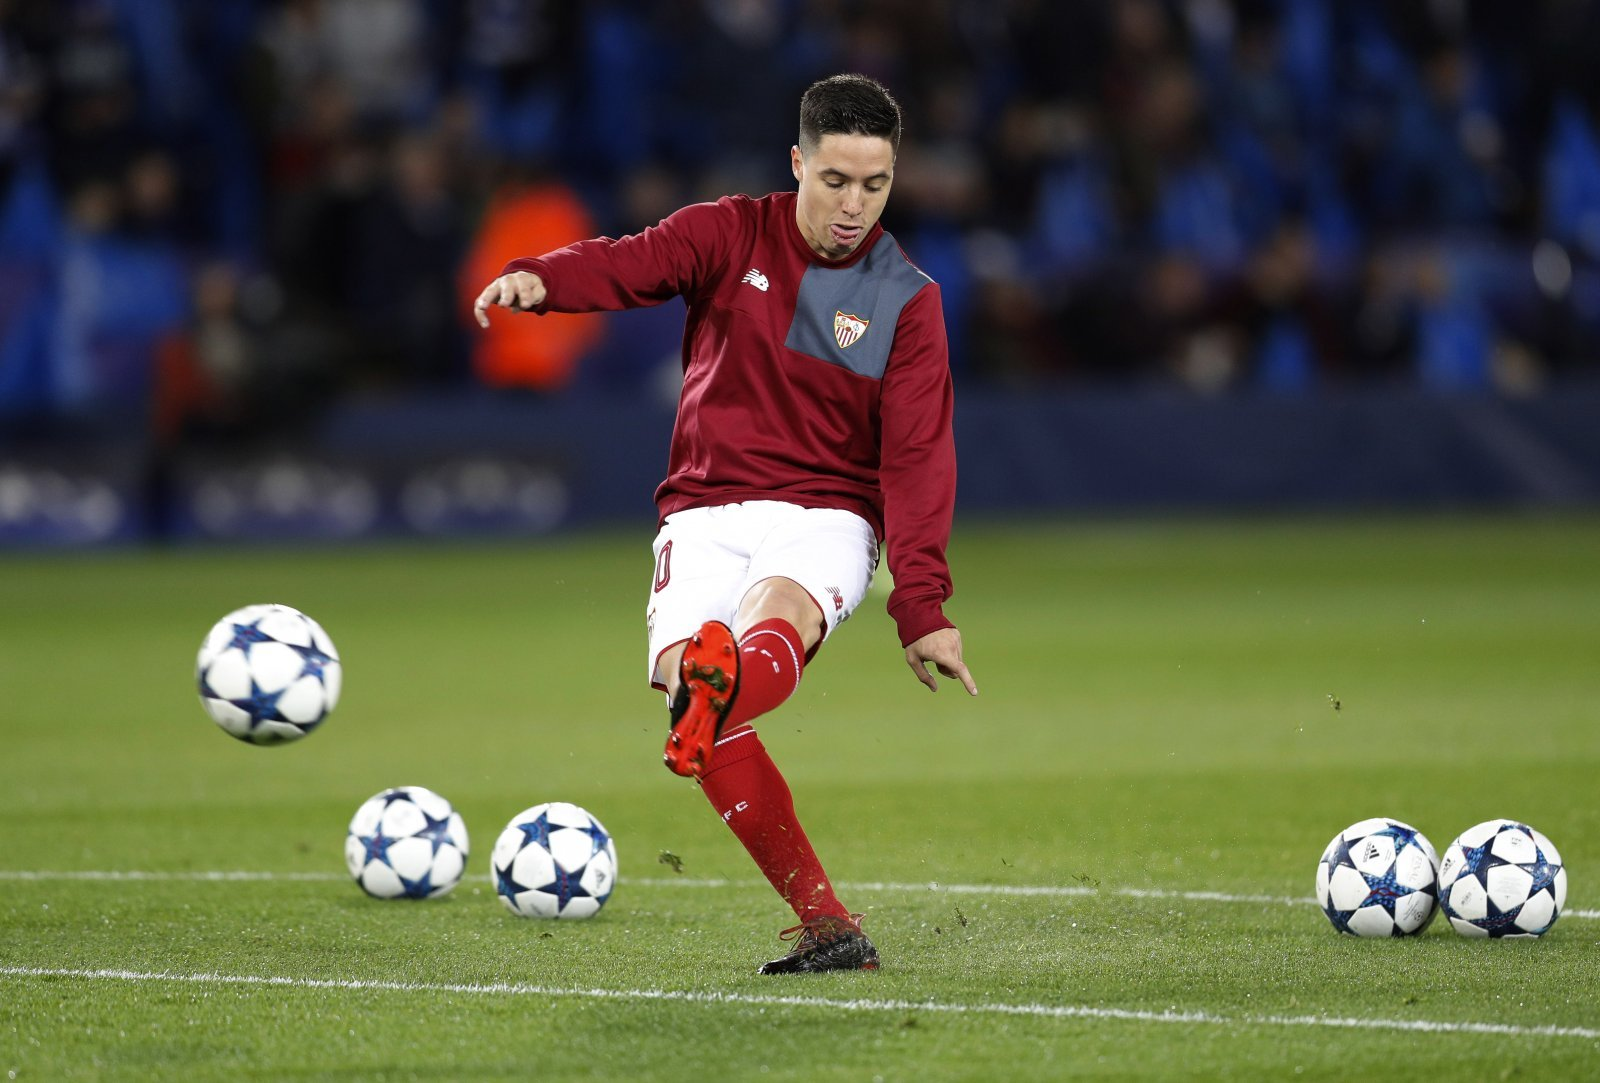 West Ham closing in on signing Samir Nasri